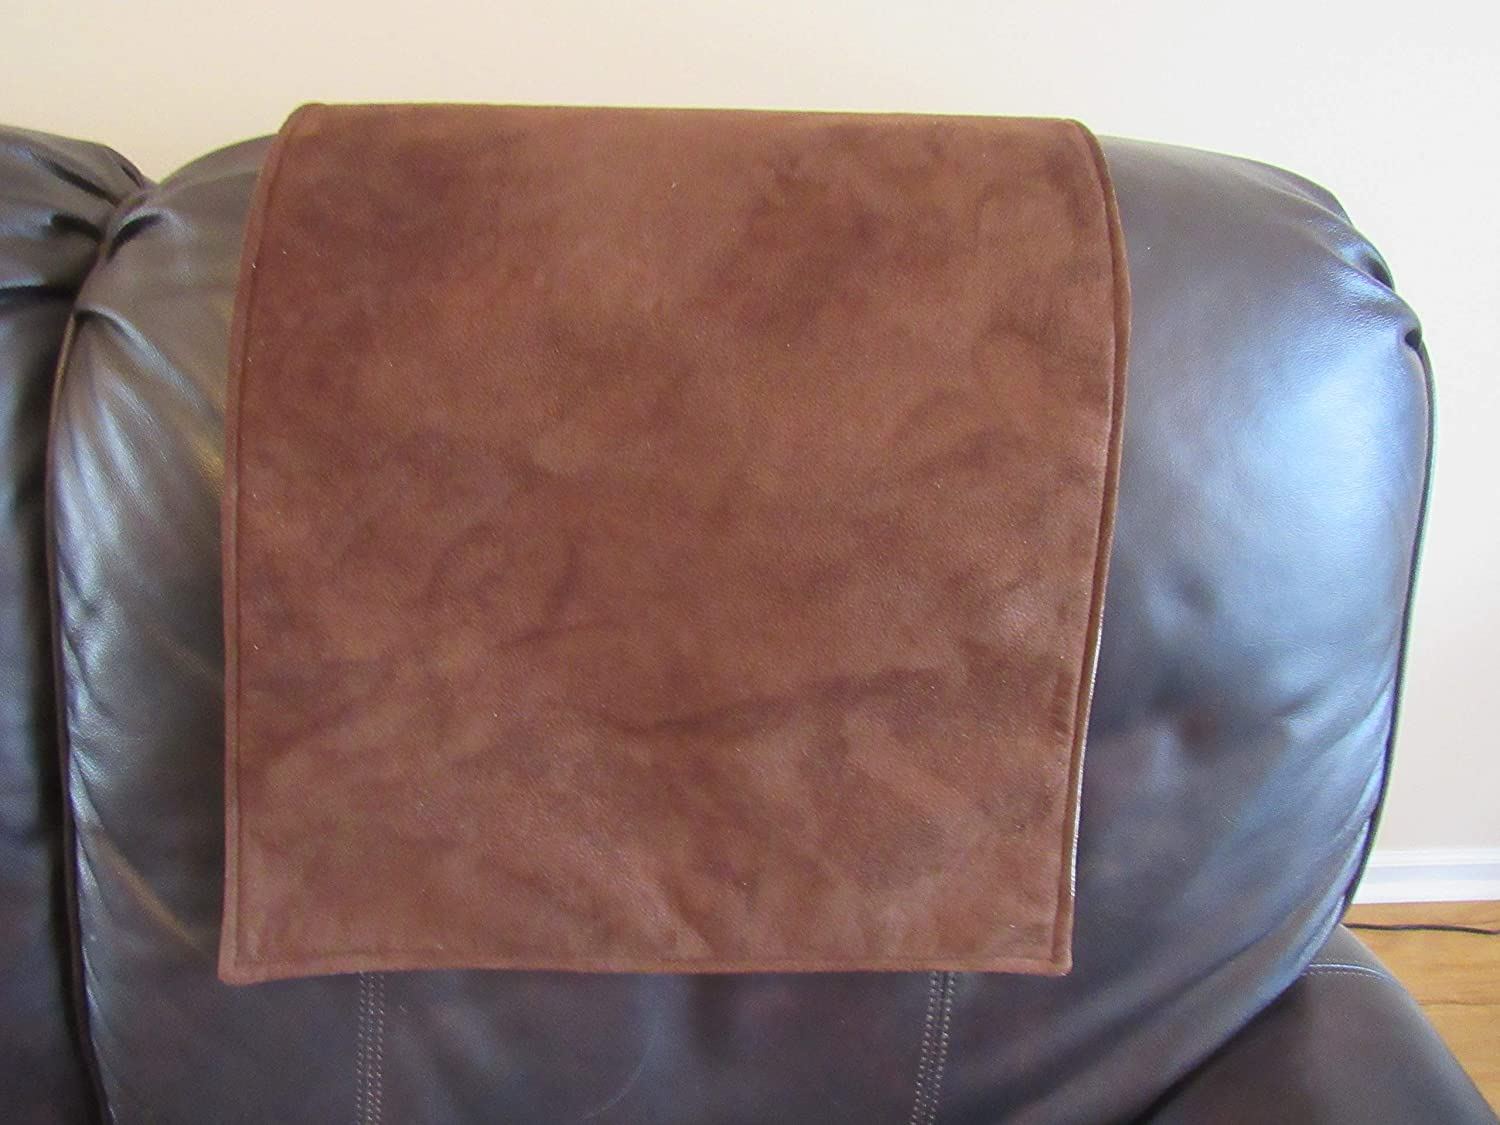 Microfiber Head rest cover, furniture protector 17x27 BROWN- Furniture, Recliners, sofas, Loveseats, slipcovers By Bittlemen Co.